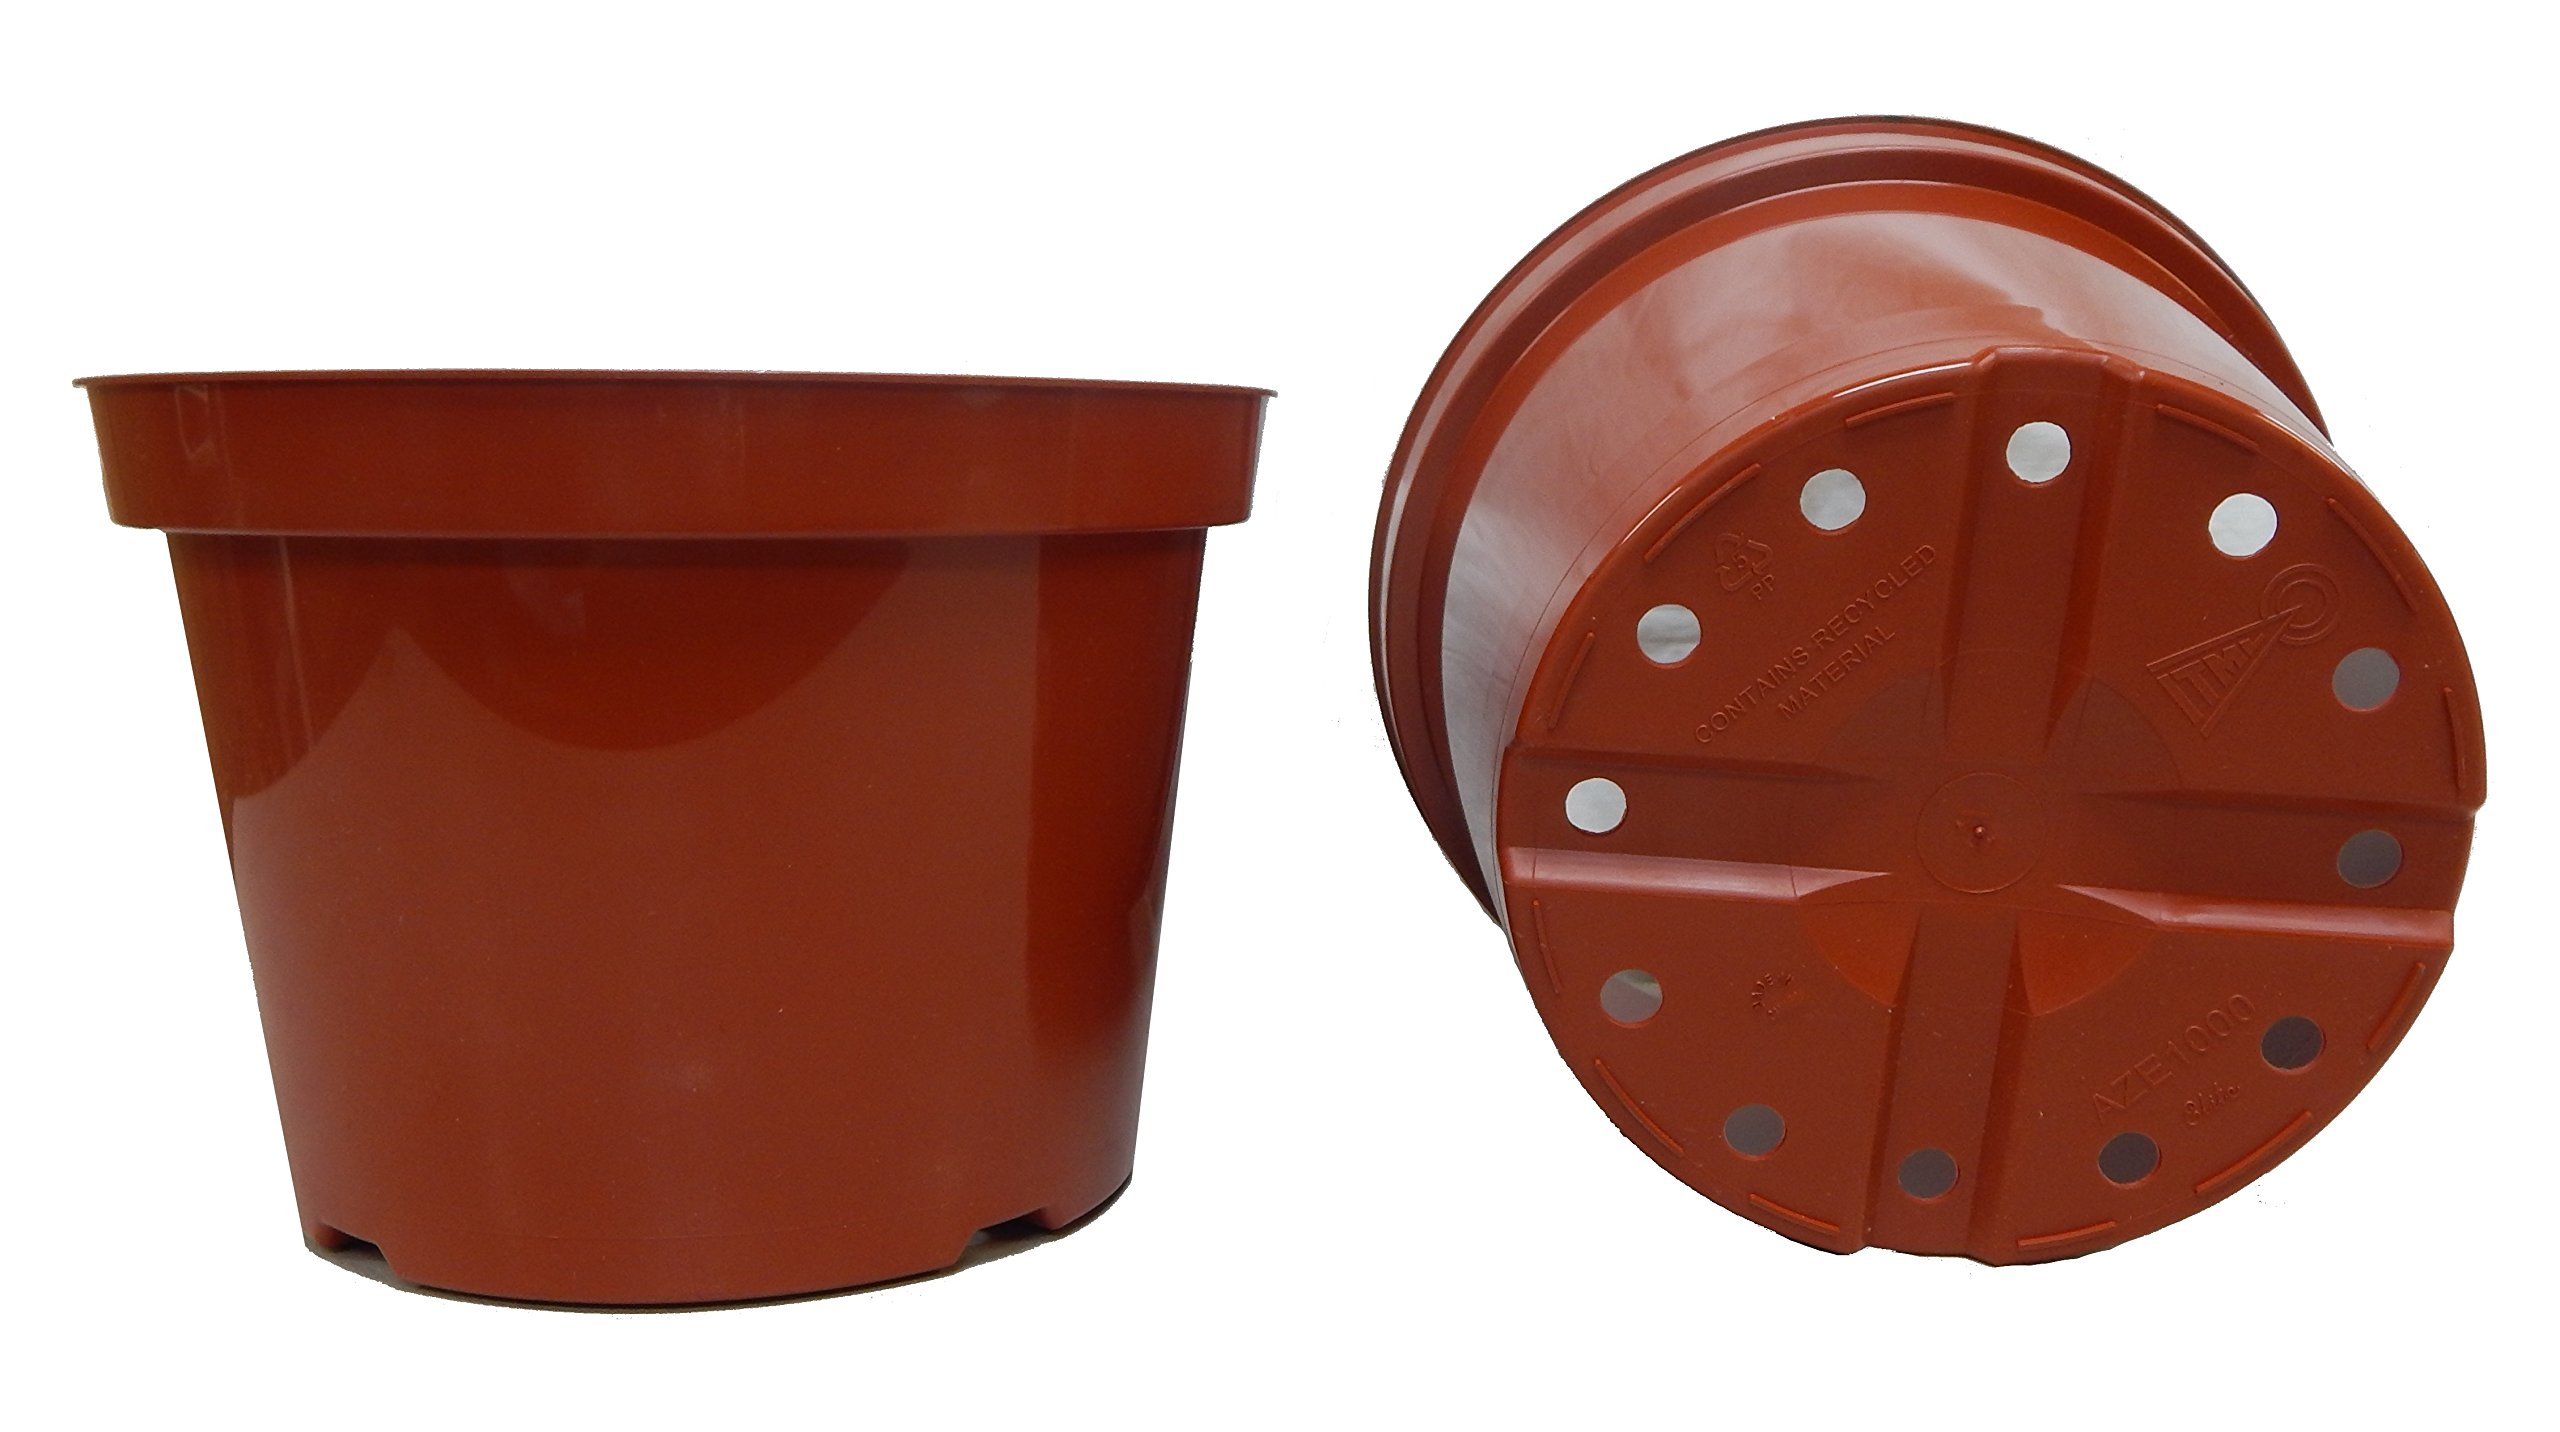 12 NEW 10 Inch Azalea Plastic Nursery Pots ~ Pots are 10 Inch Round At the Top and 7.3 Inch Deep Color Terracotta